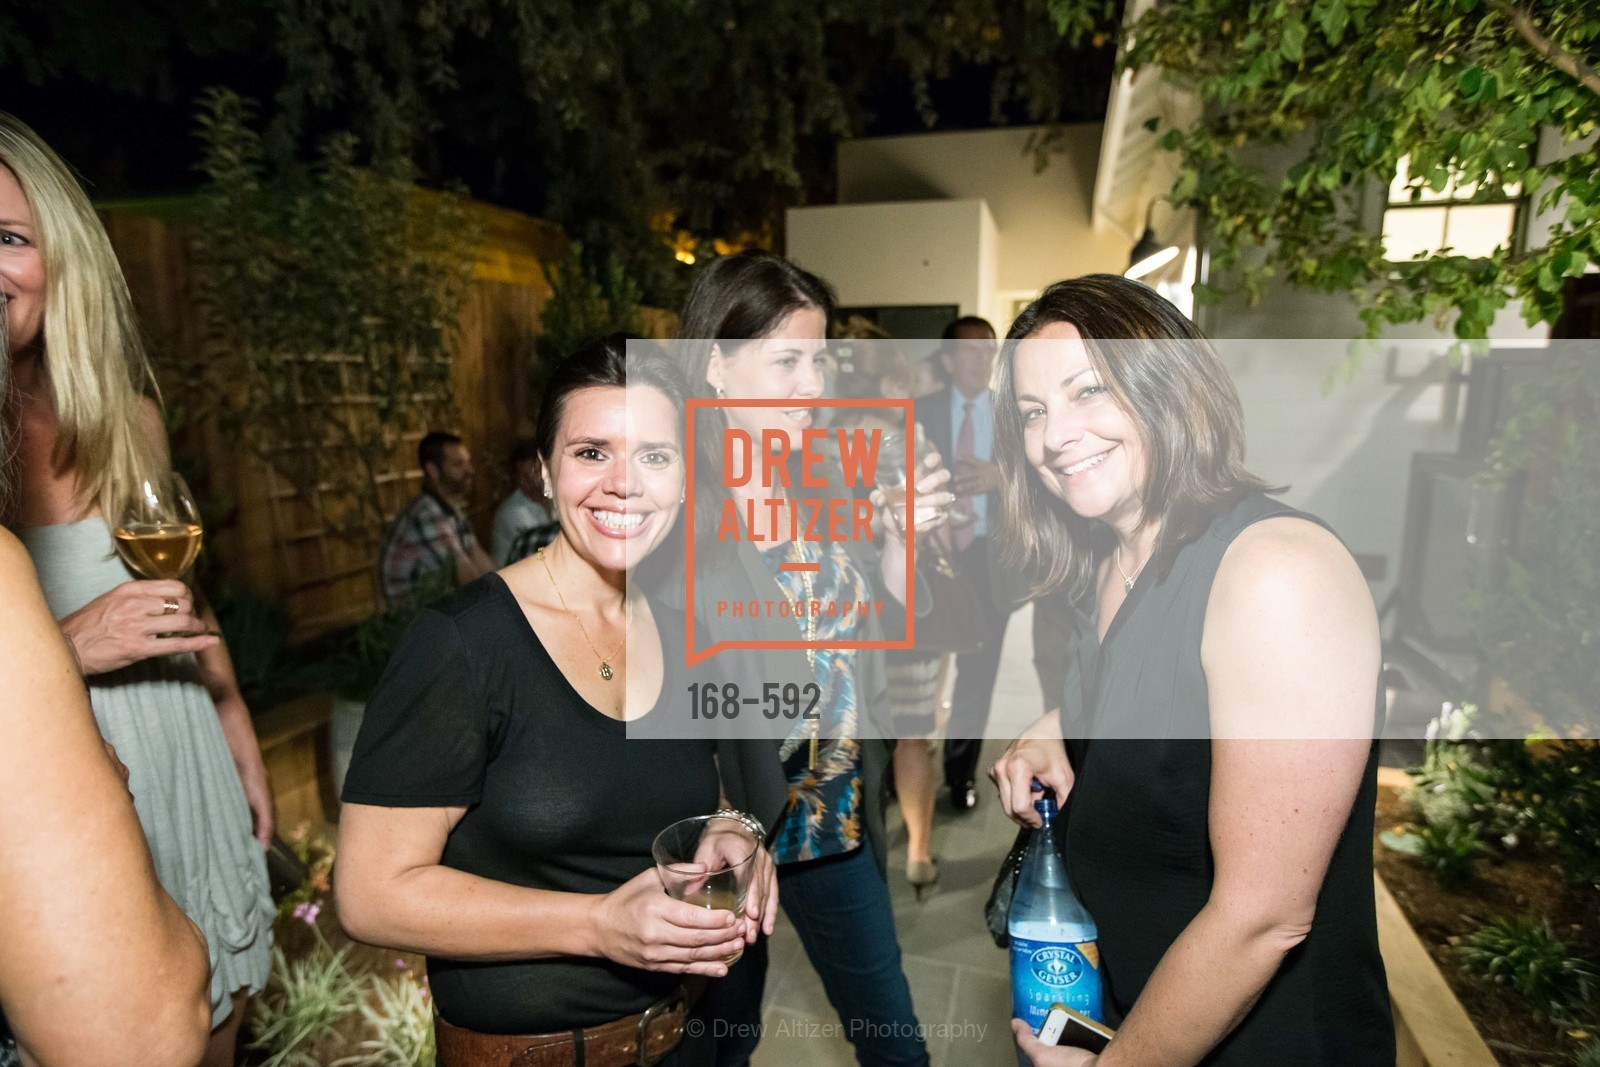 Heather Intoschi, Marcy Webster, Michelle Foss, WILLIAMS-SONOMA Cochon BBQ Celebration, US, October 2nd, 2014,Drew Altizer, Drew Altizer Photography, full-service agency, private events, San Francisco photographer, photographer california